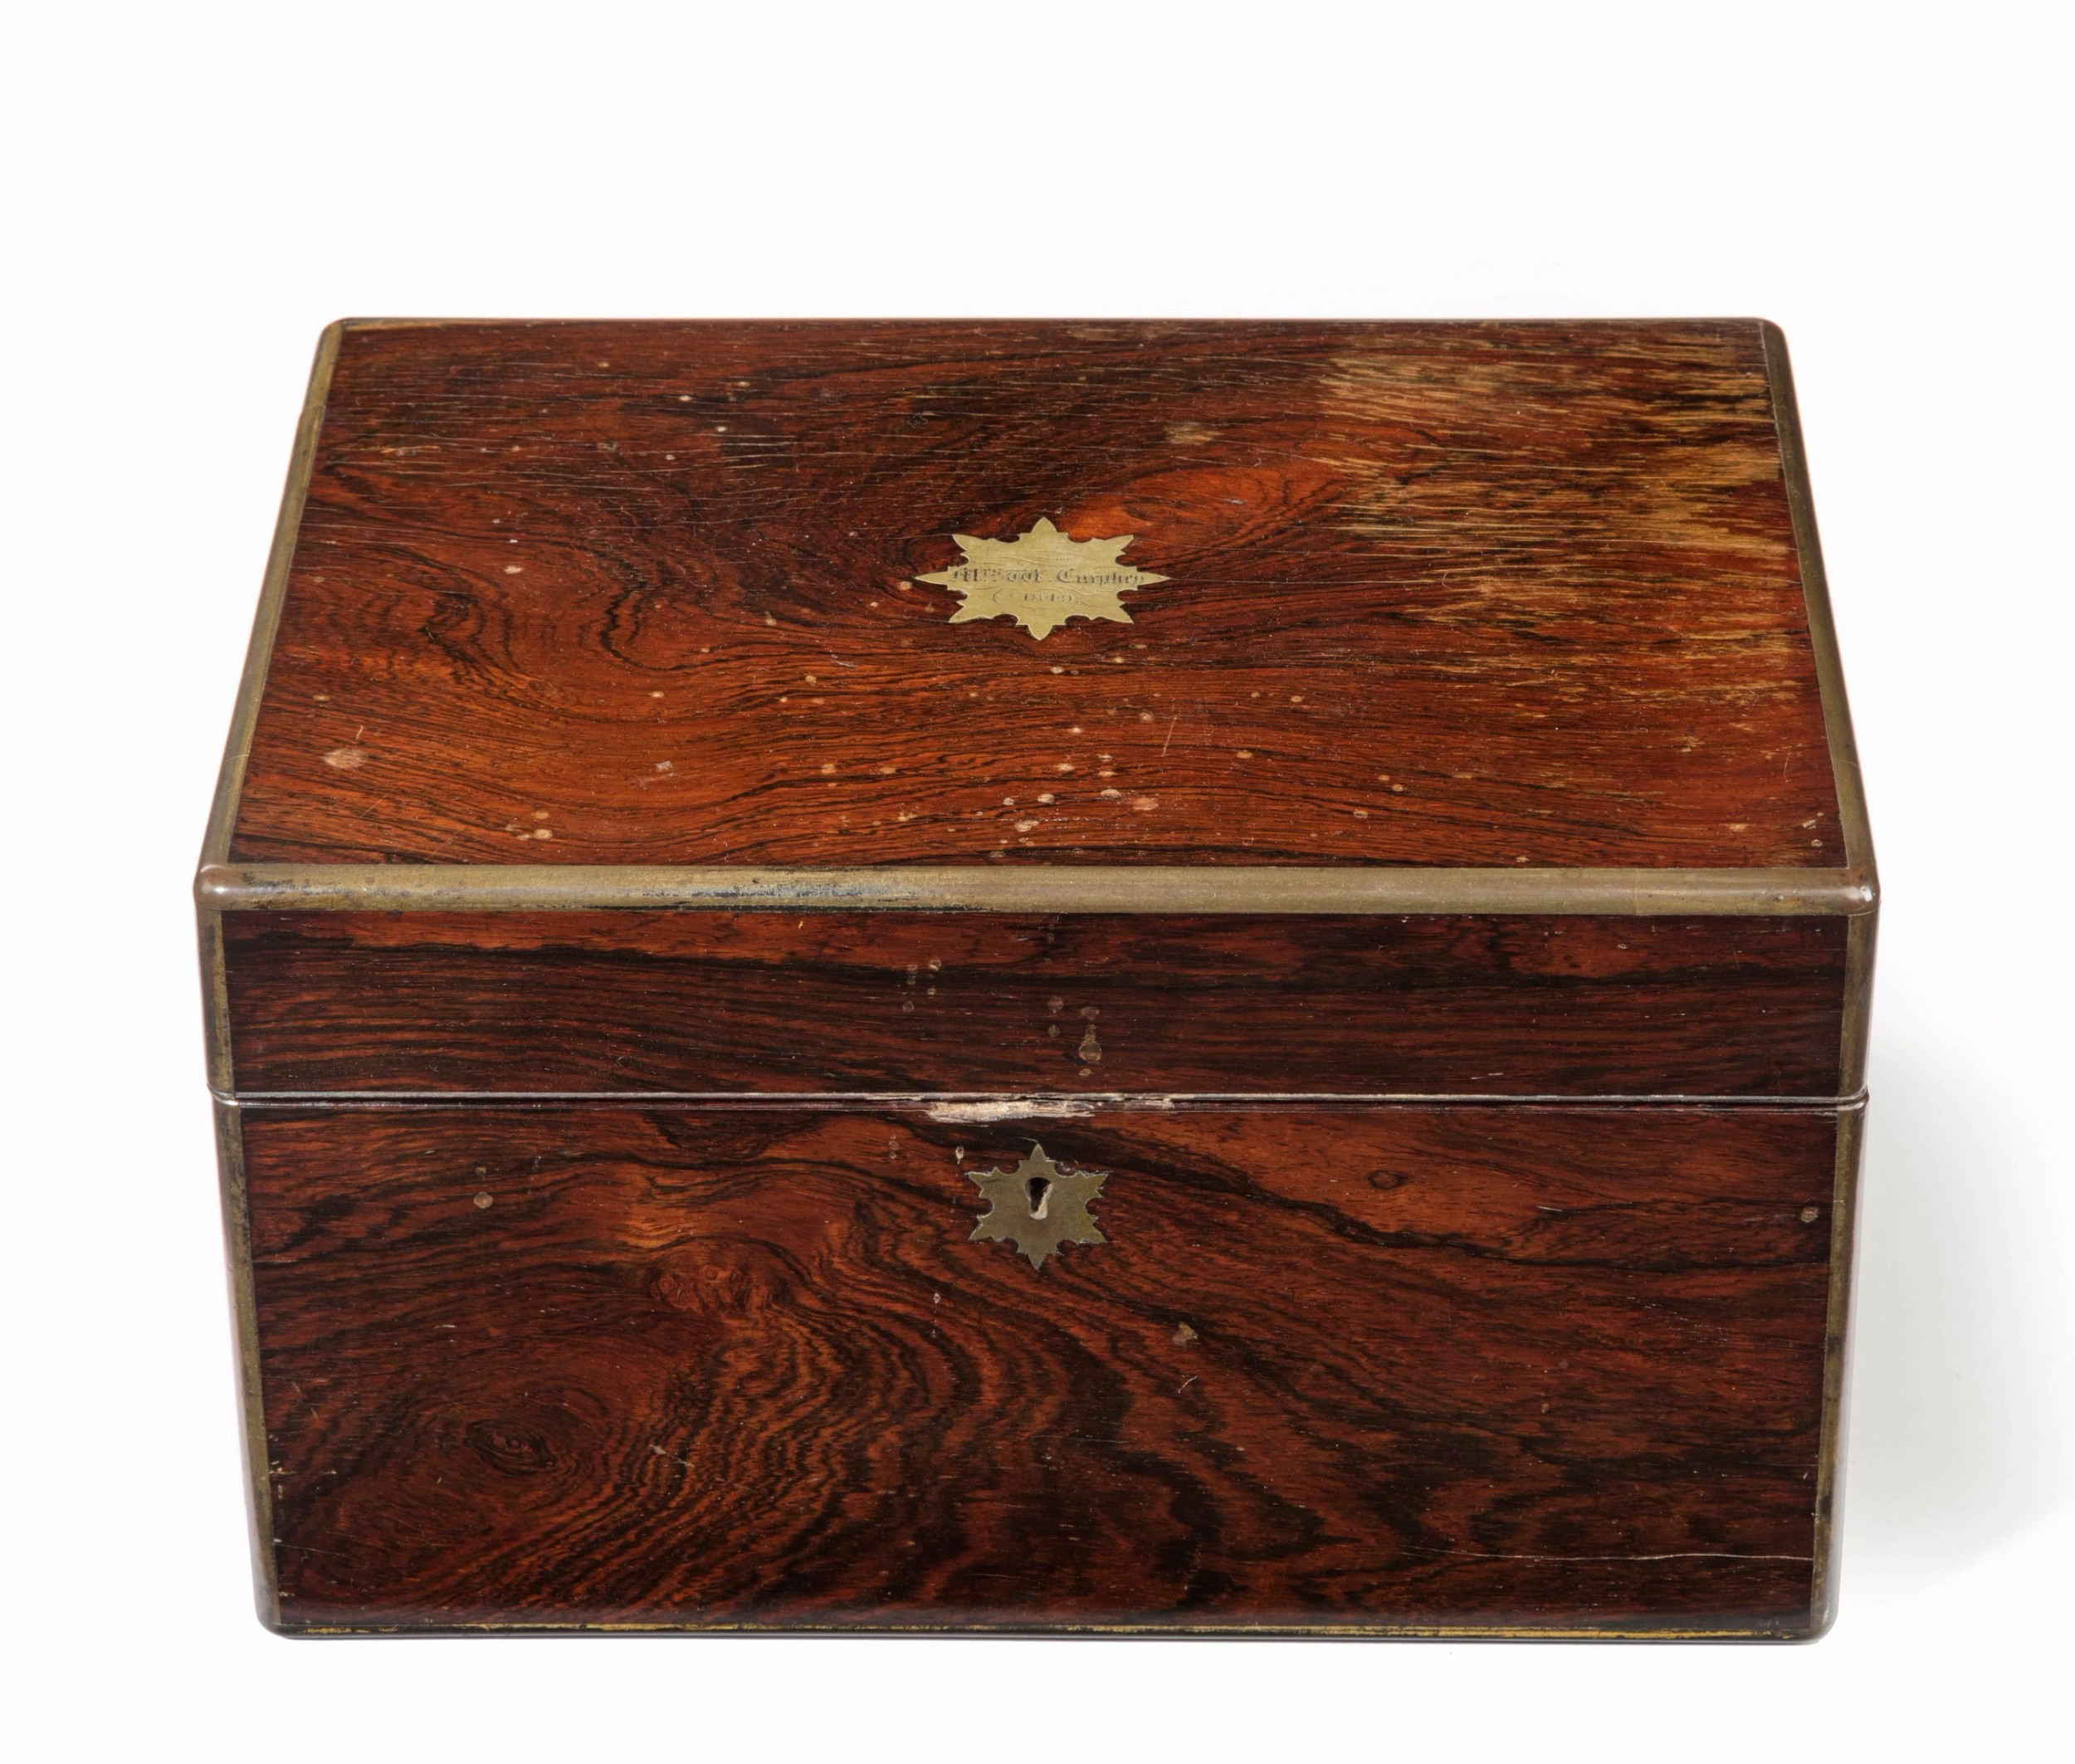 mid 19th century rosewood vanity case inlaid with brass edging